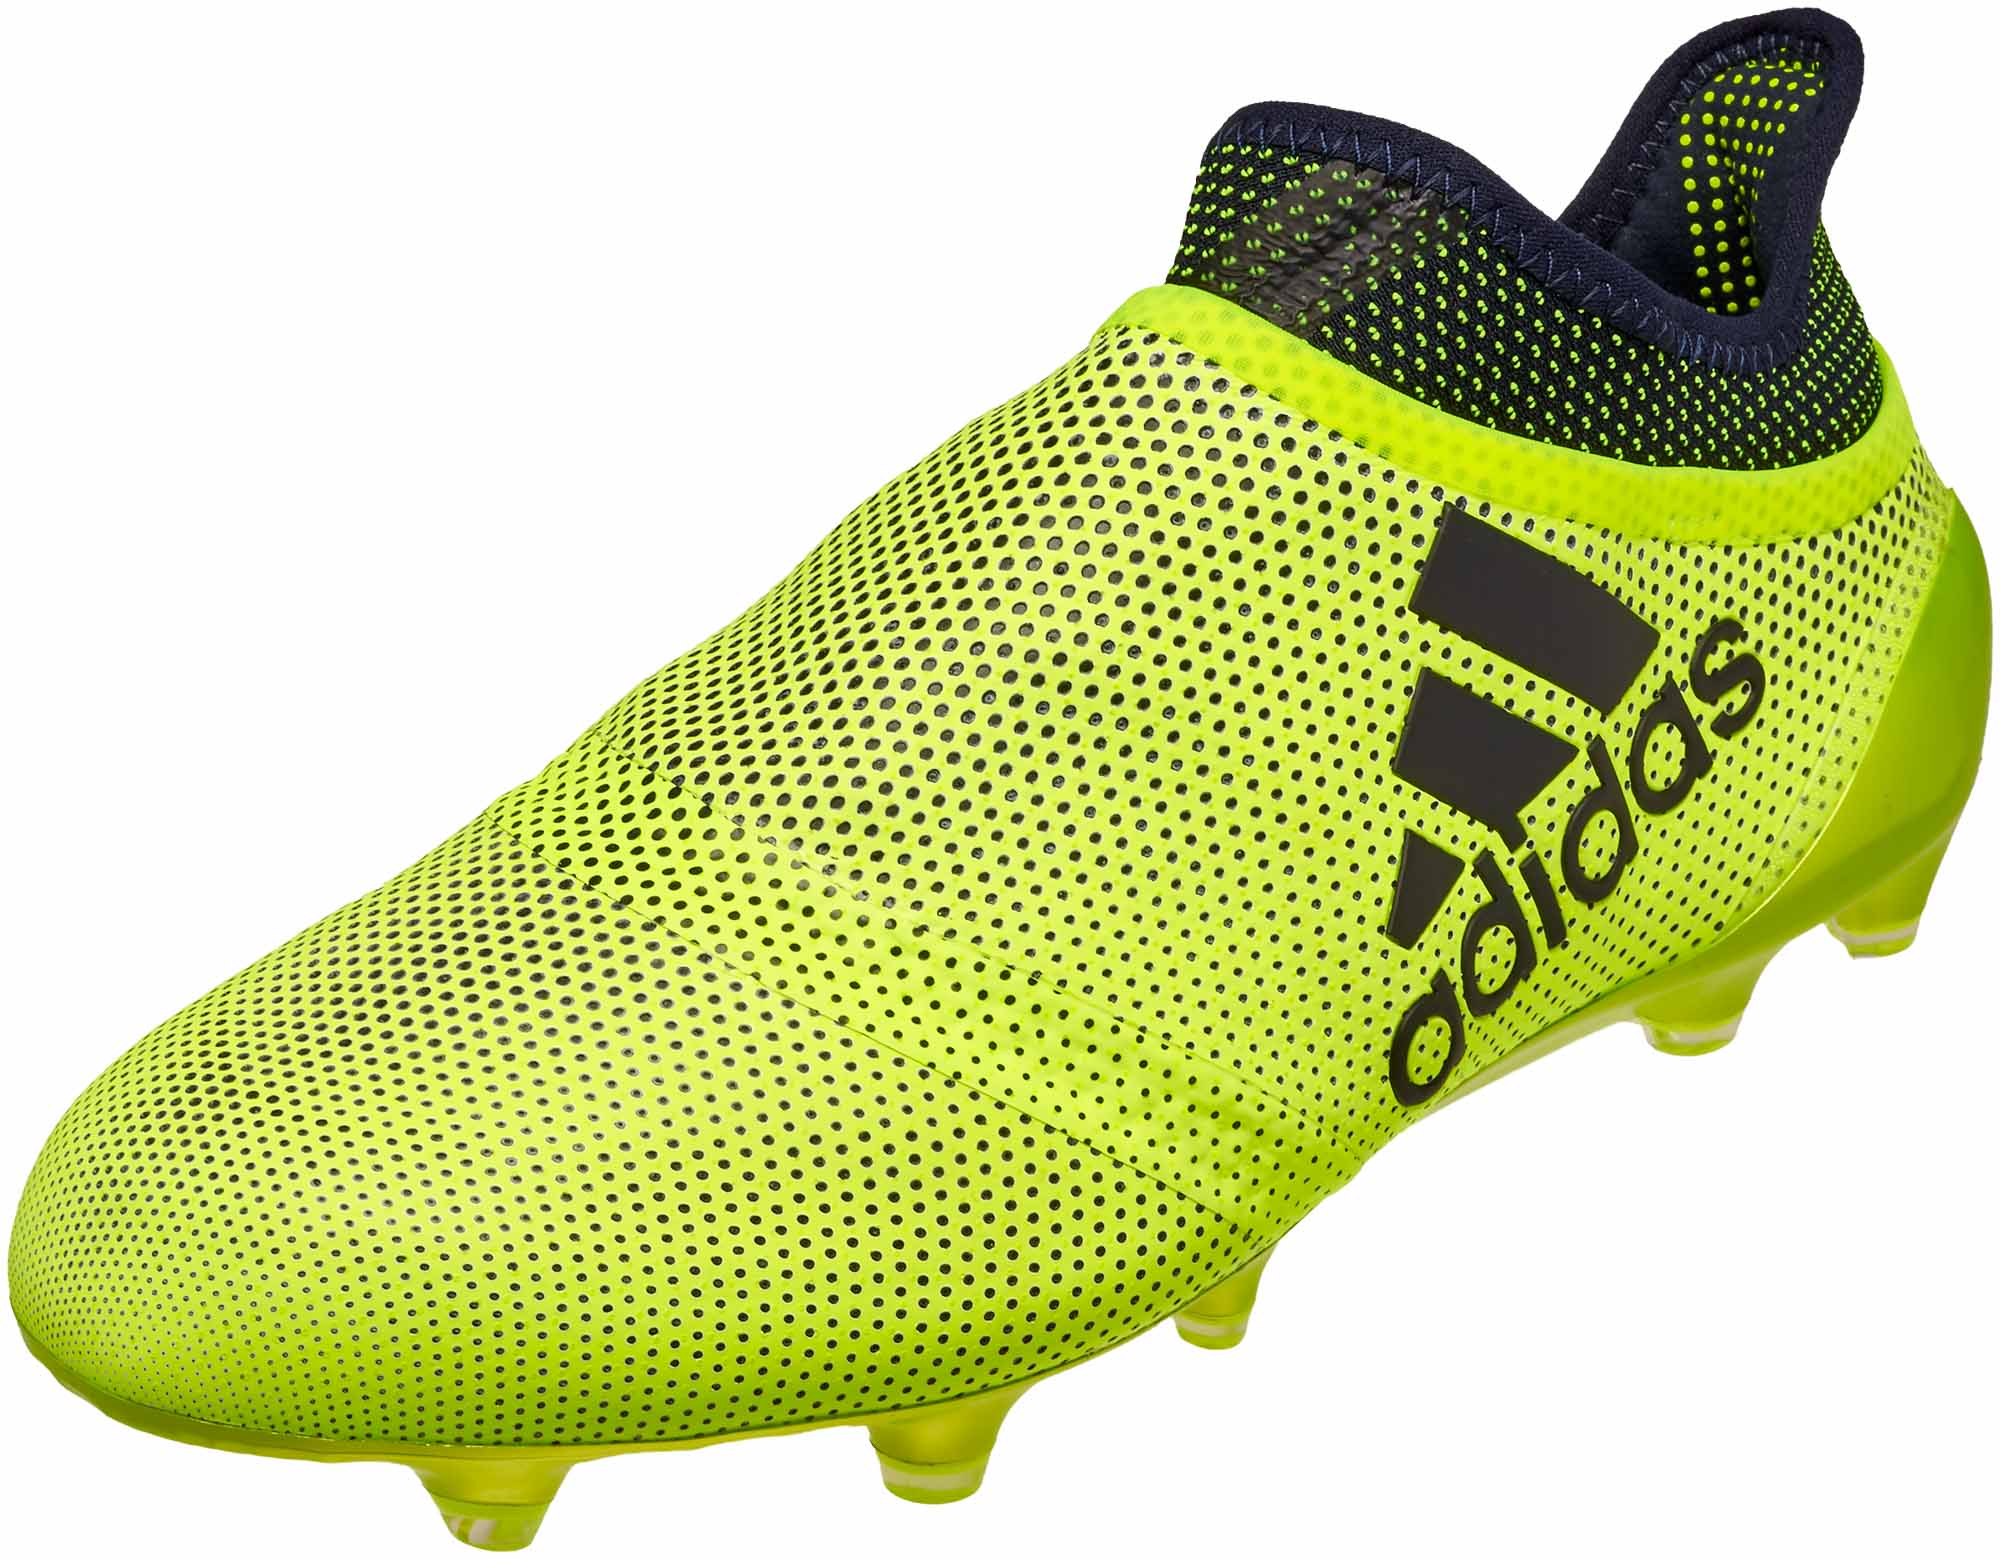 Adidas X Soccer Shoes For Turf